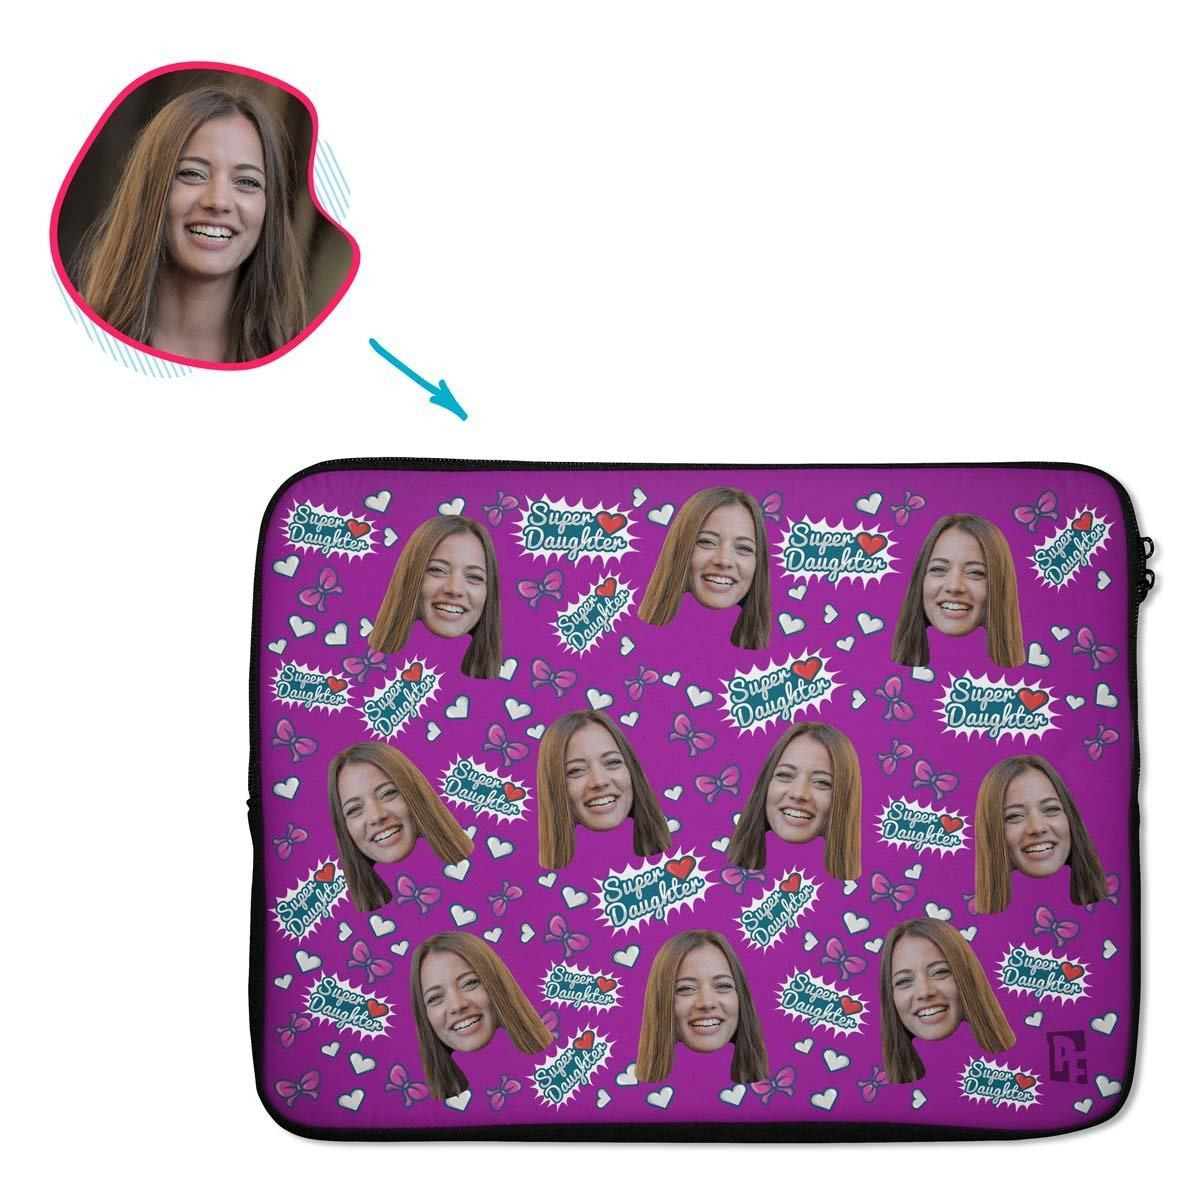 purple Super Daughter laptop sleeve personalized with photo of face printed on them